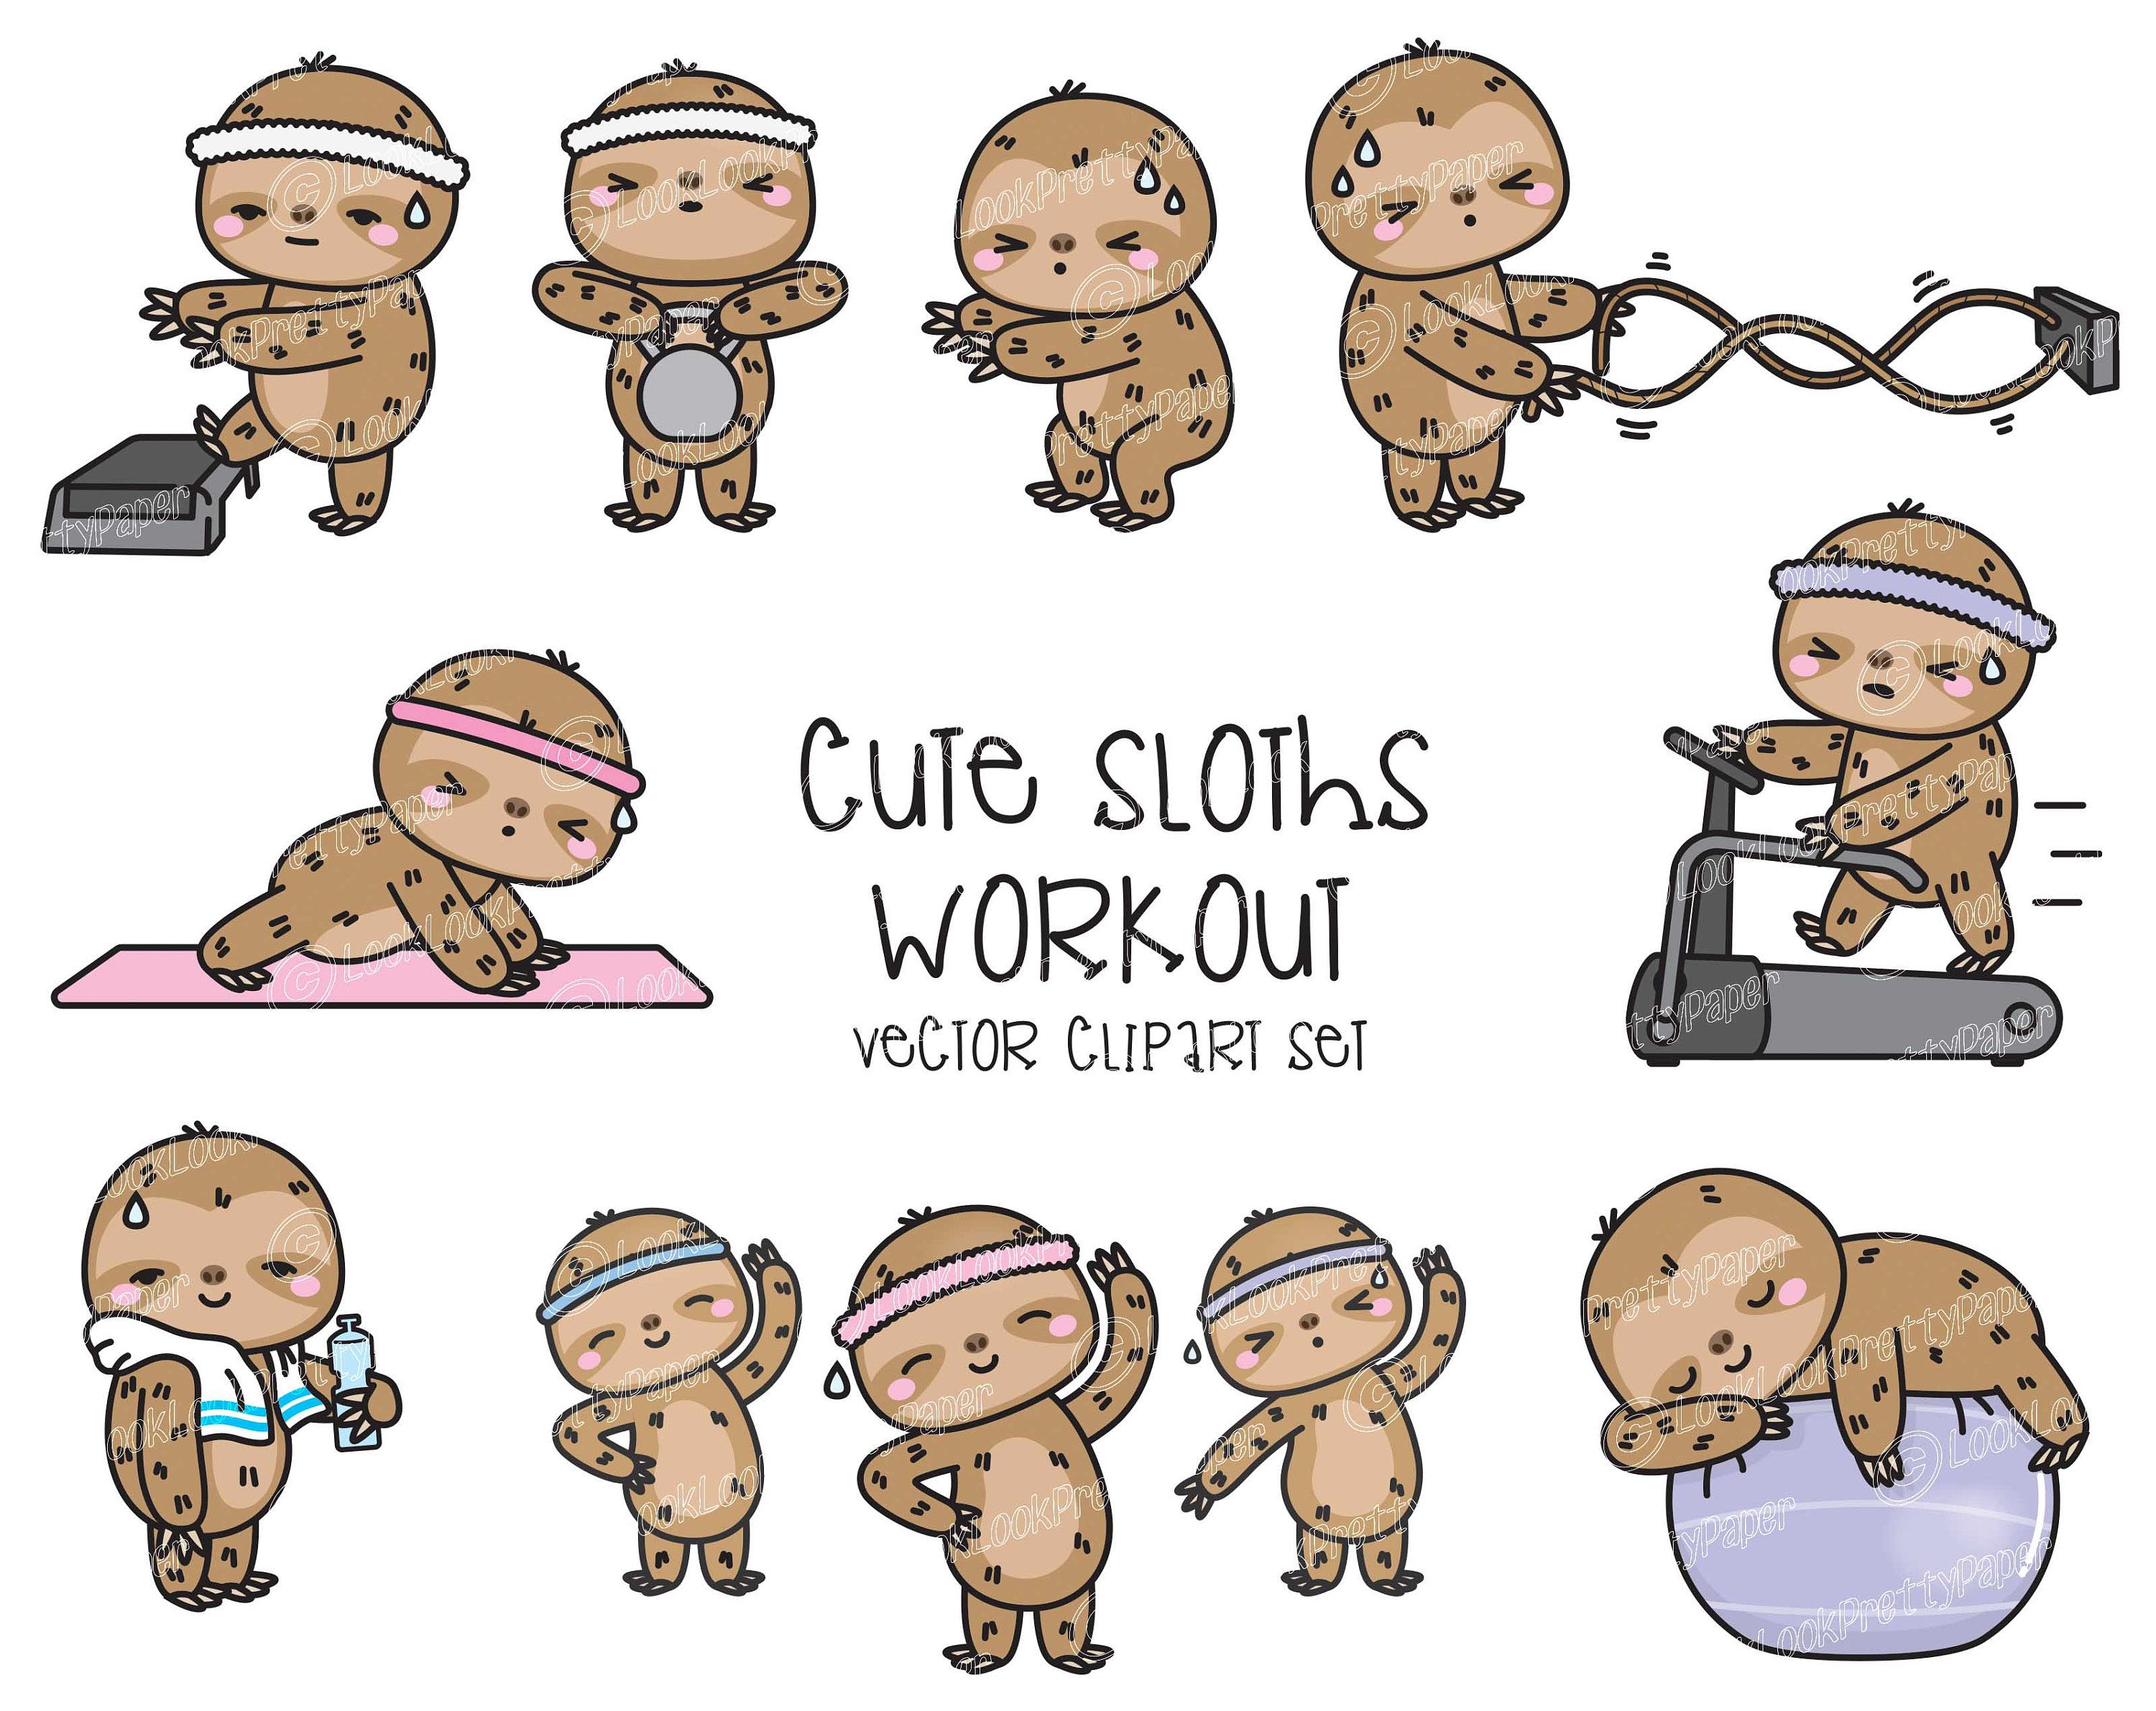 Premium Vector Clipart Kawaii Workout Sloths Cute Workout Sloths Clipart Set High Quality Vectors Kawaii Workout Clipart In 2021 Clip Art Vector Clipart Greeting Cards And Invitations